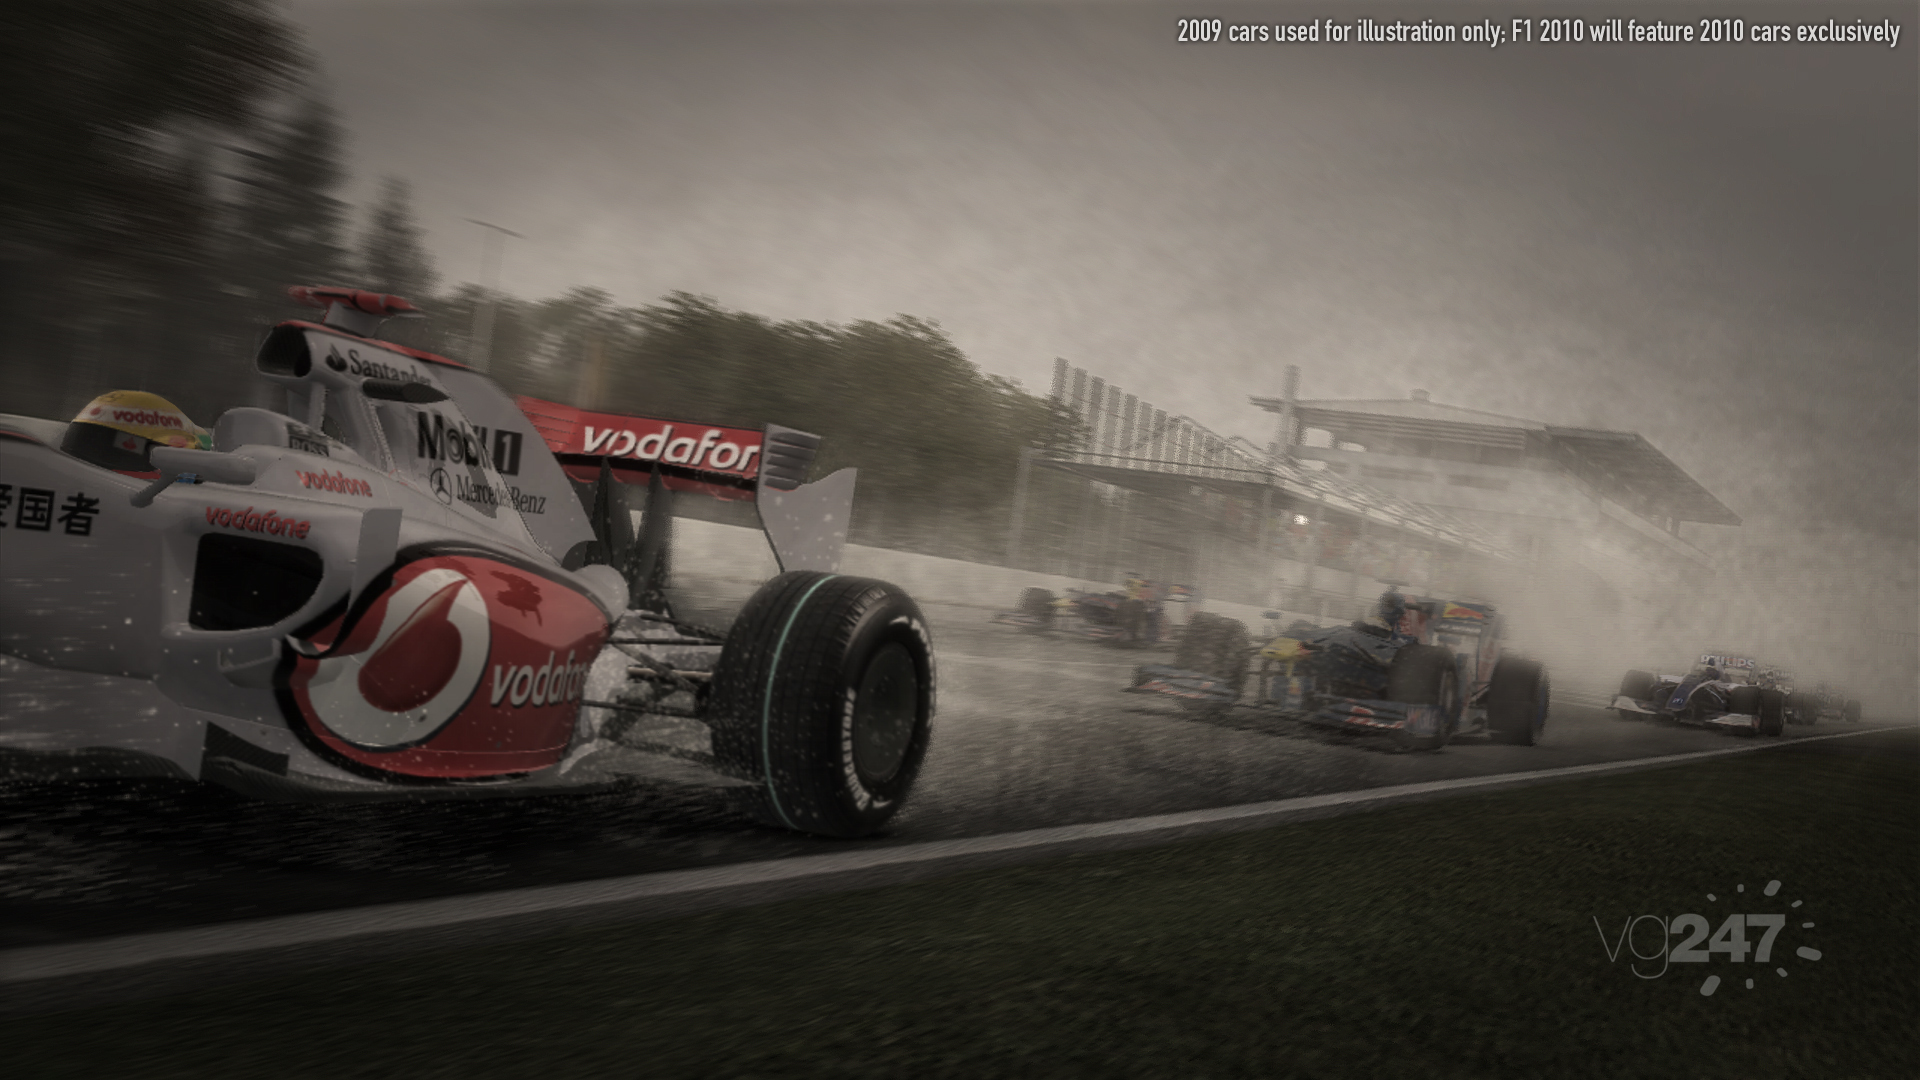 Simulation-based handling in f1 2010 will benefit all players says chief games designer in new developer